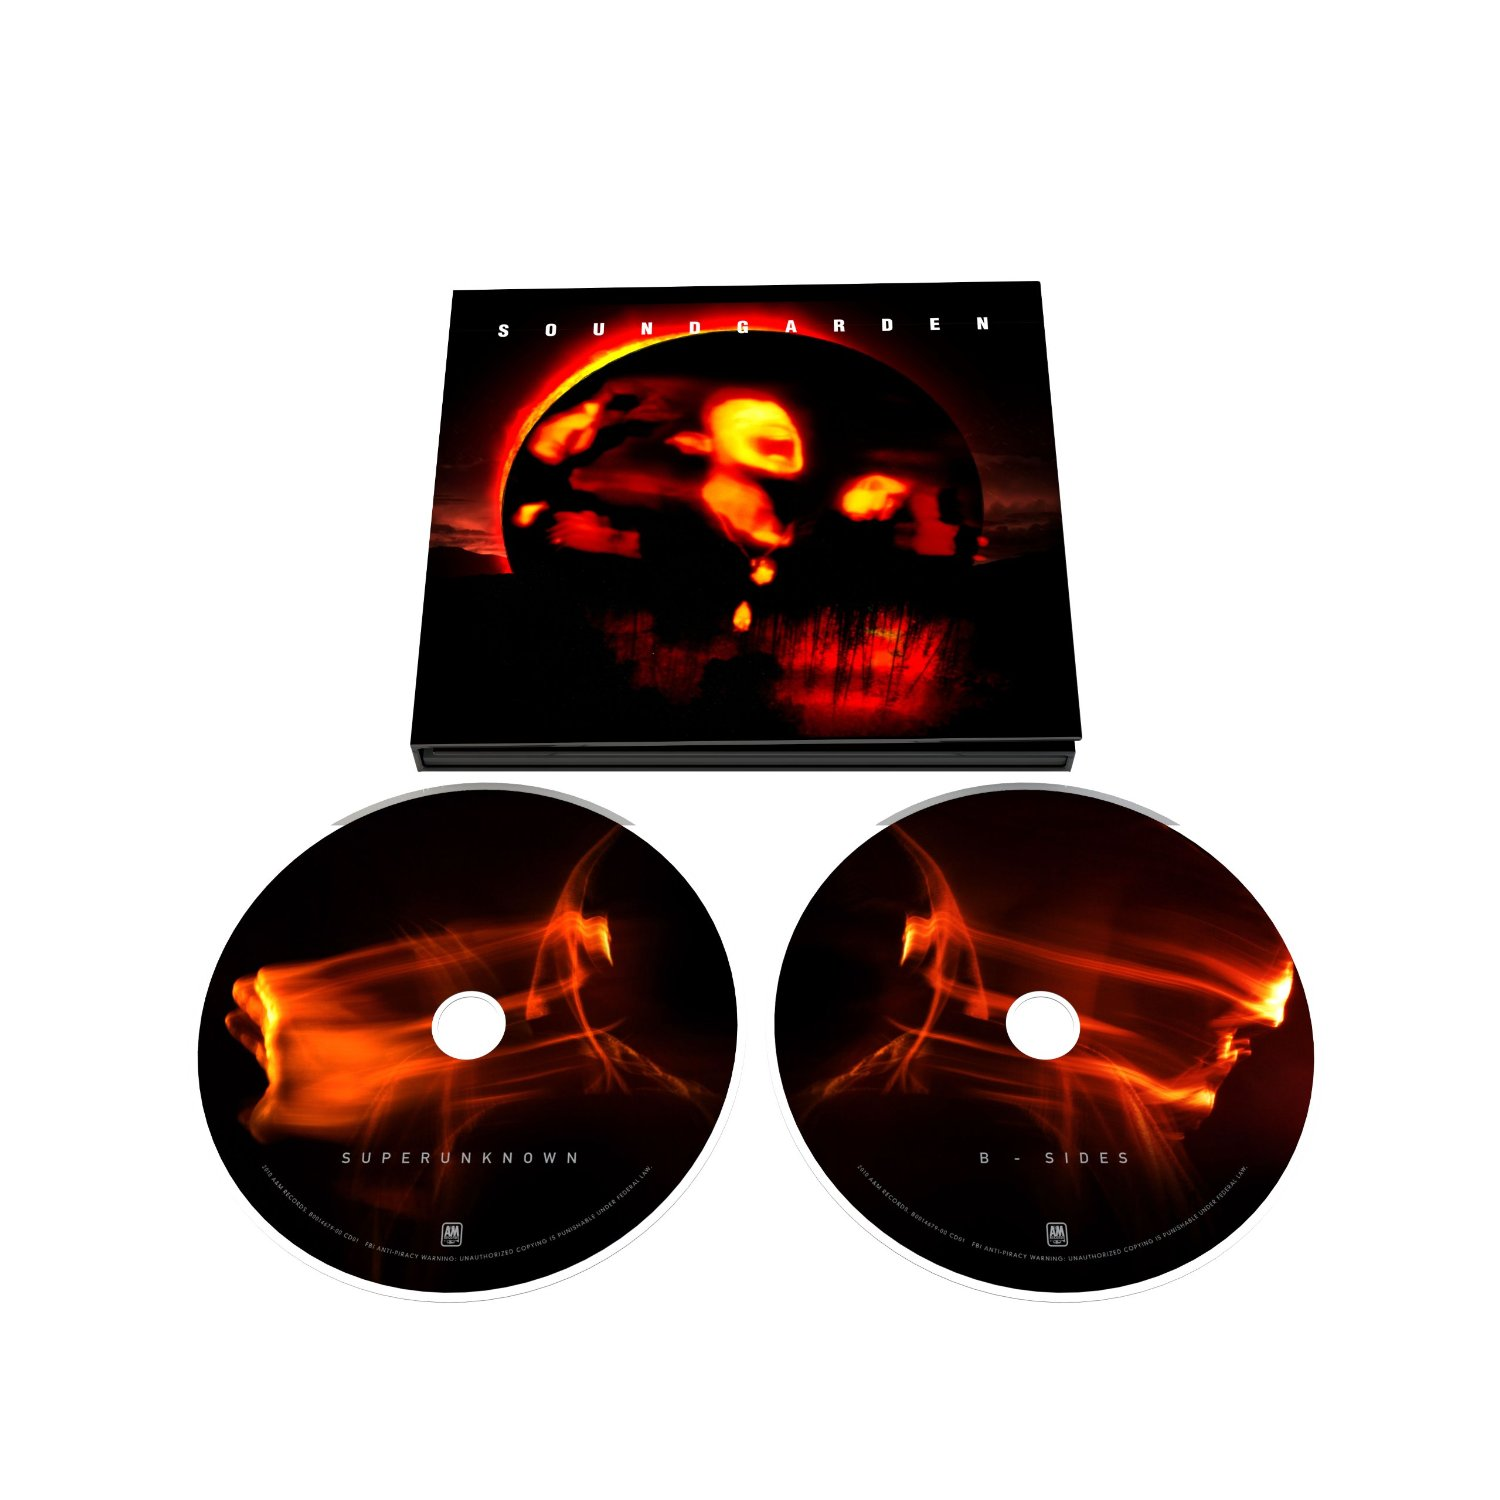 Superunknown - deluxe